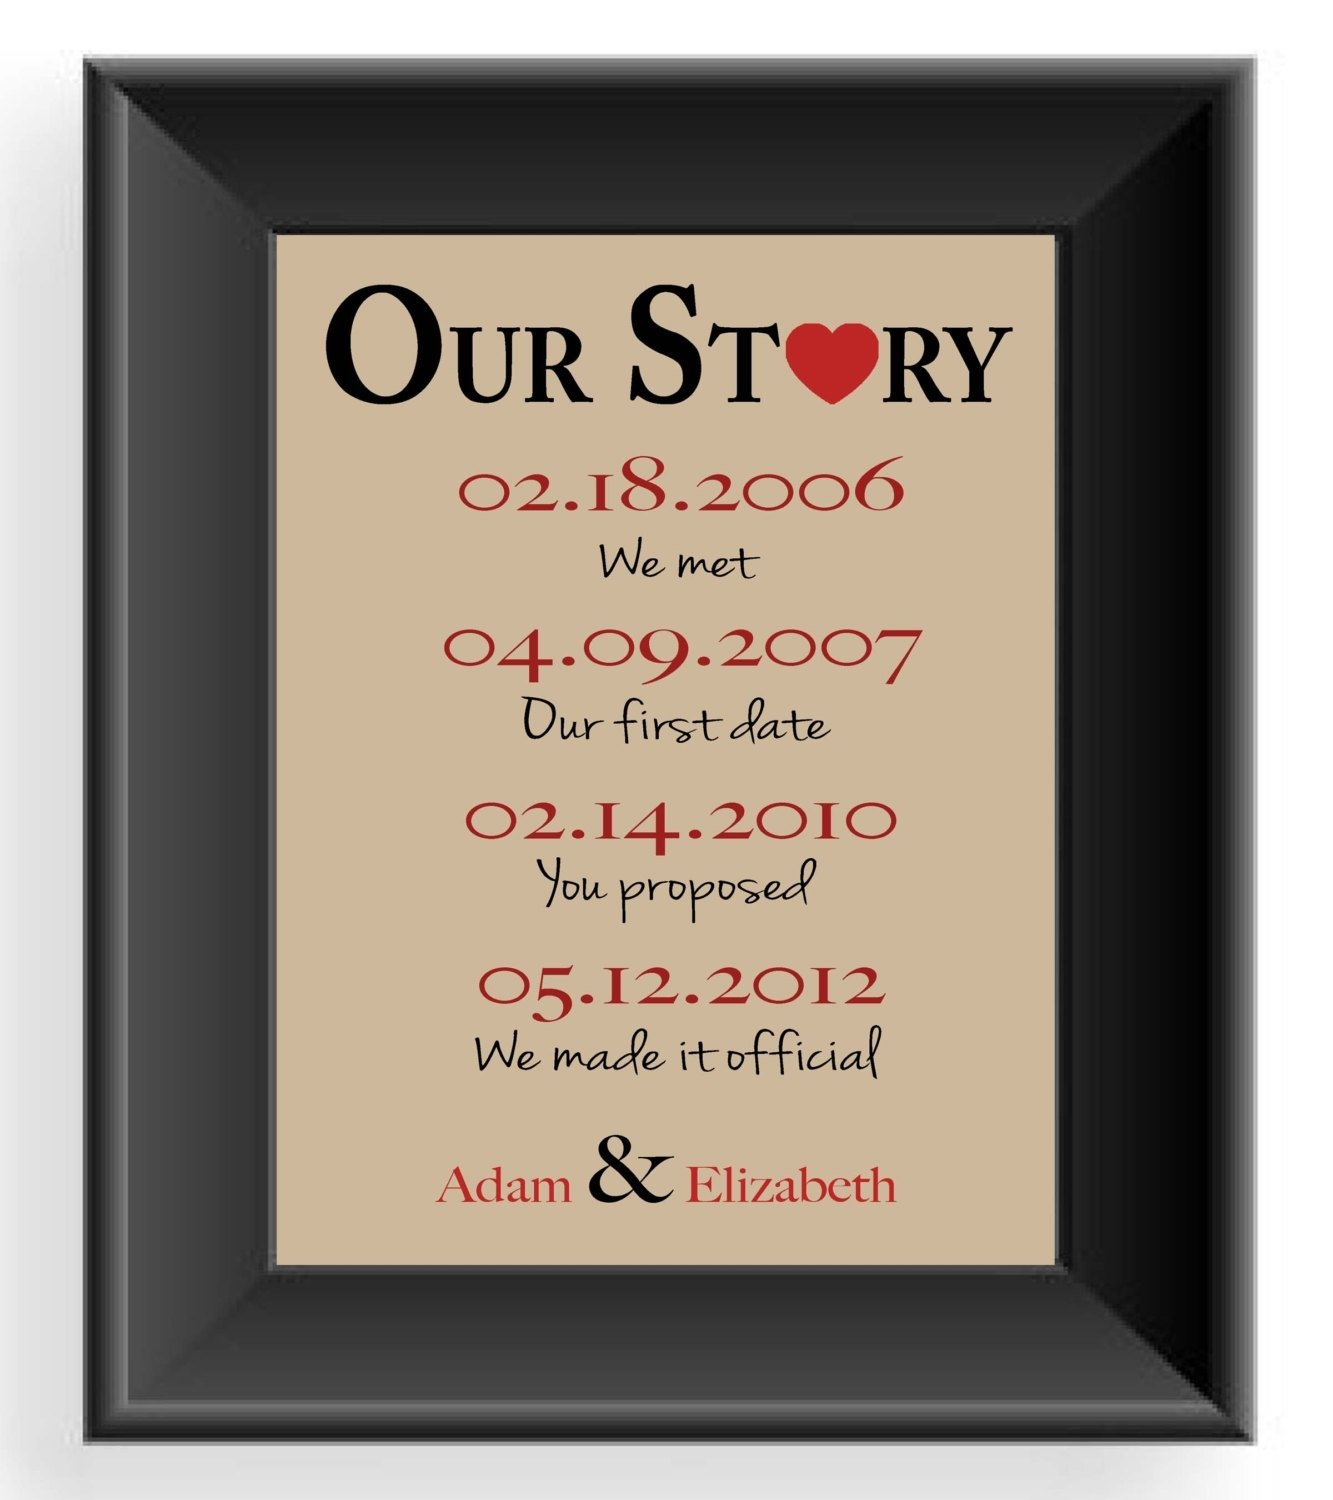 10 Great Gift Ideas For Husband Anniversary valentines day gift important dates wedding gift for couple 33 2020